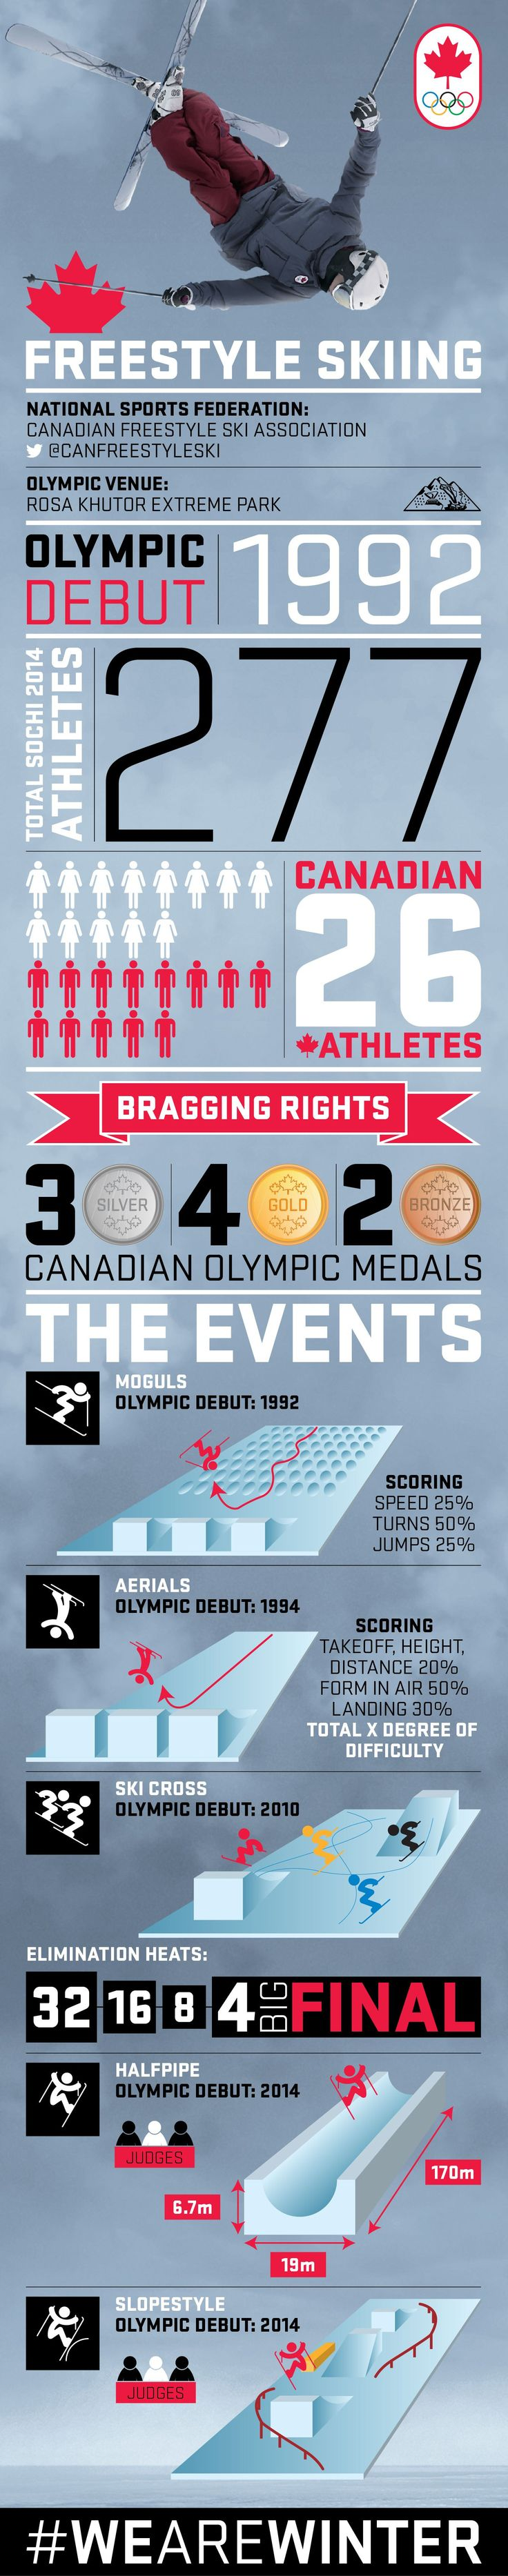 Freestyle Skiing infographic from olympic.ca #TeamCanada #Canada #WeAreWinter #FreestyleSkiing